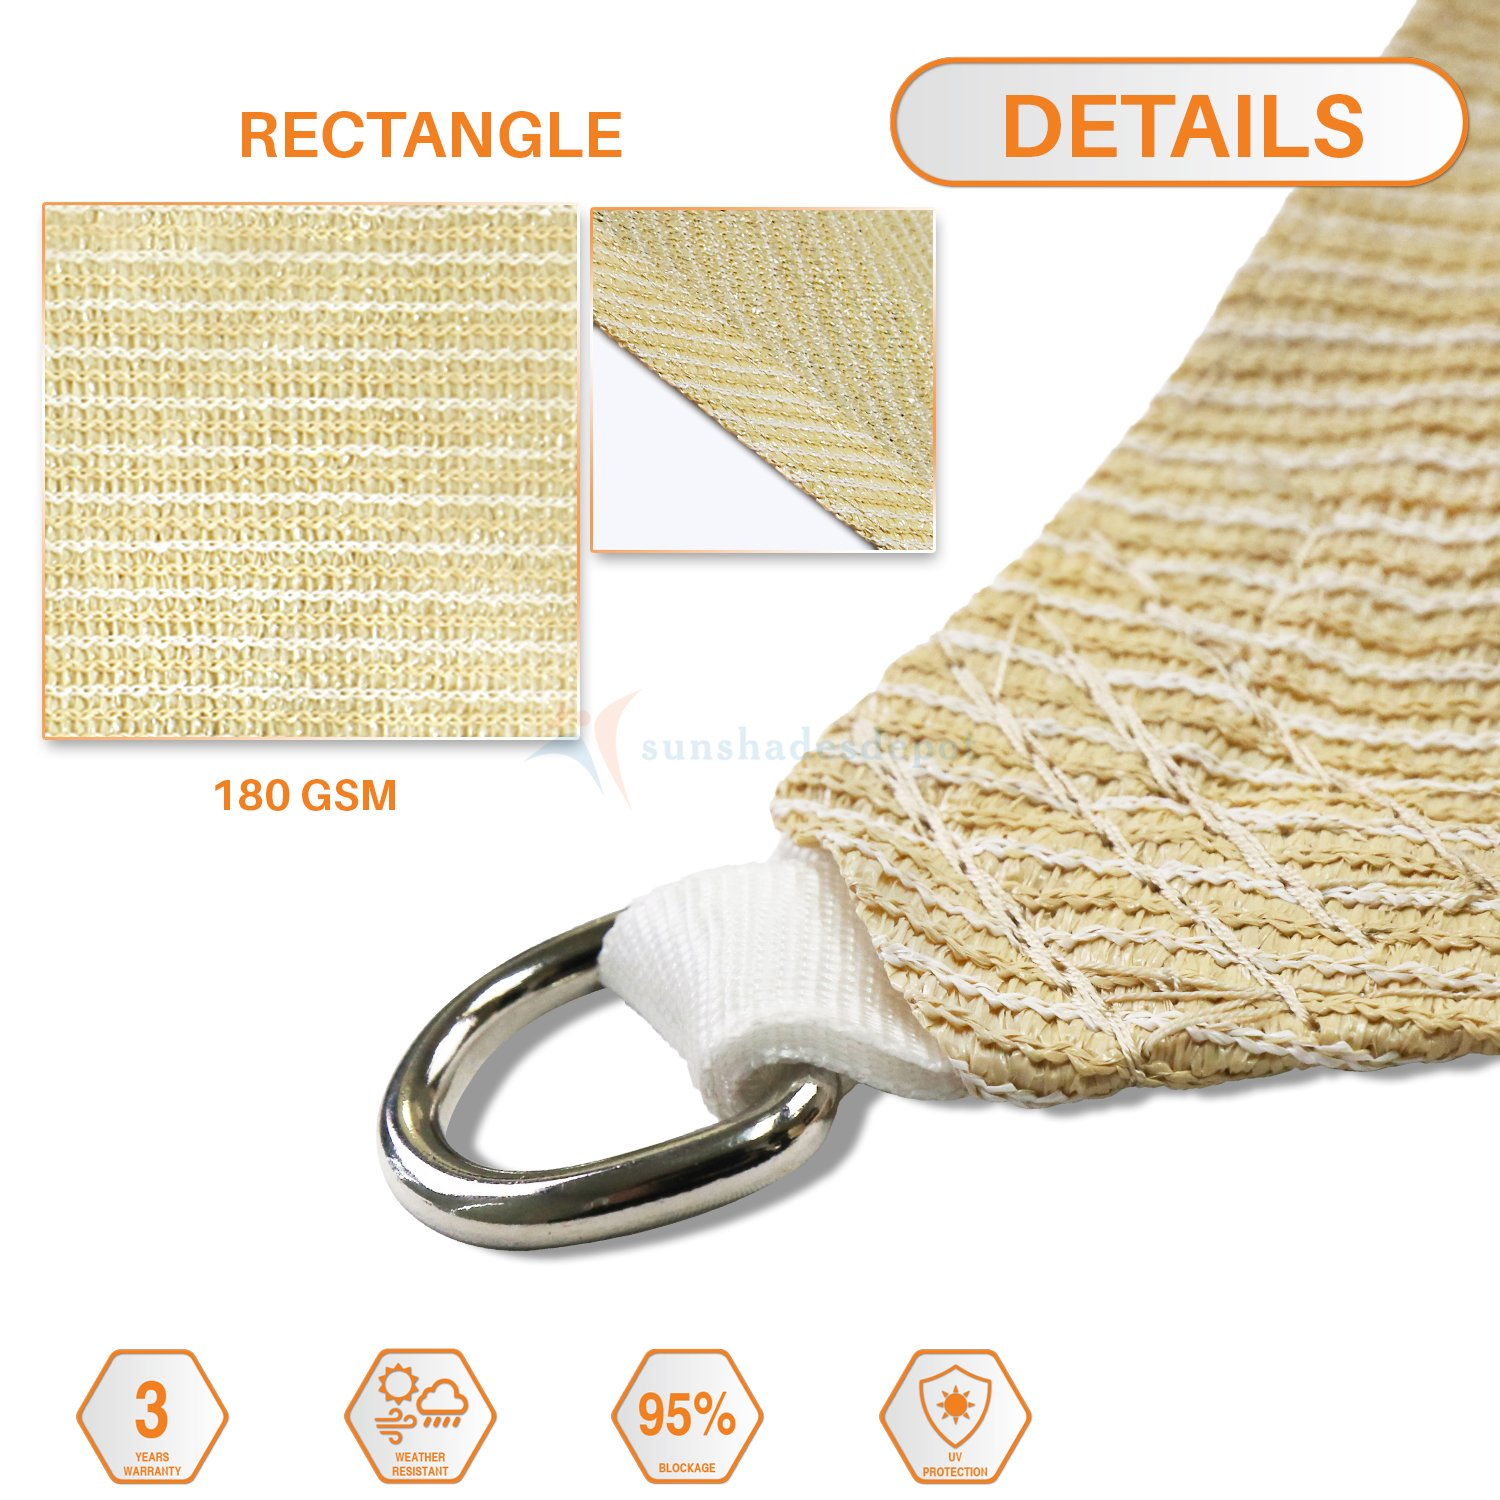 Sunshades Depot 16 x 20 Sun Shade Sail Rectangle Permeable Canopy Beige Customize Commercial Standard 180 GSM HDPE